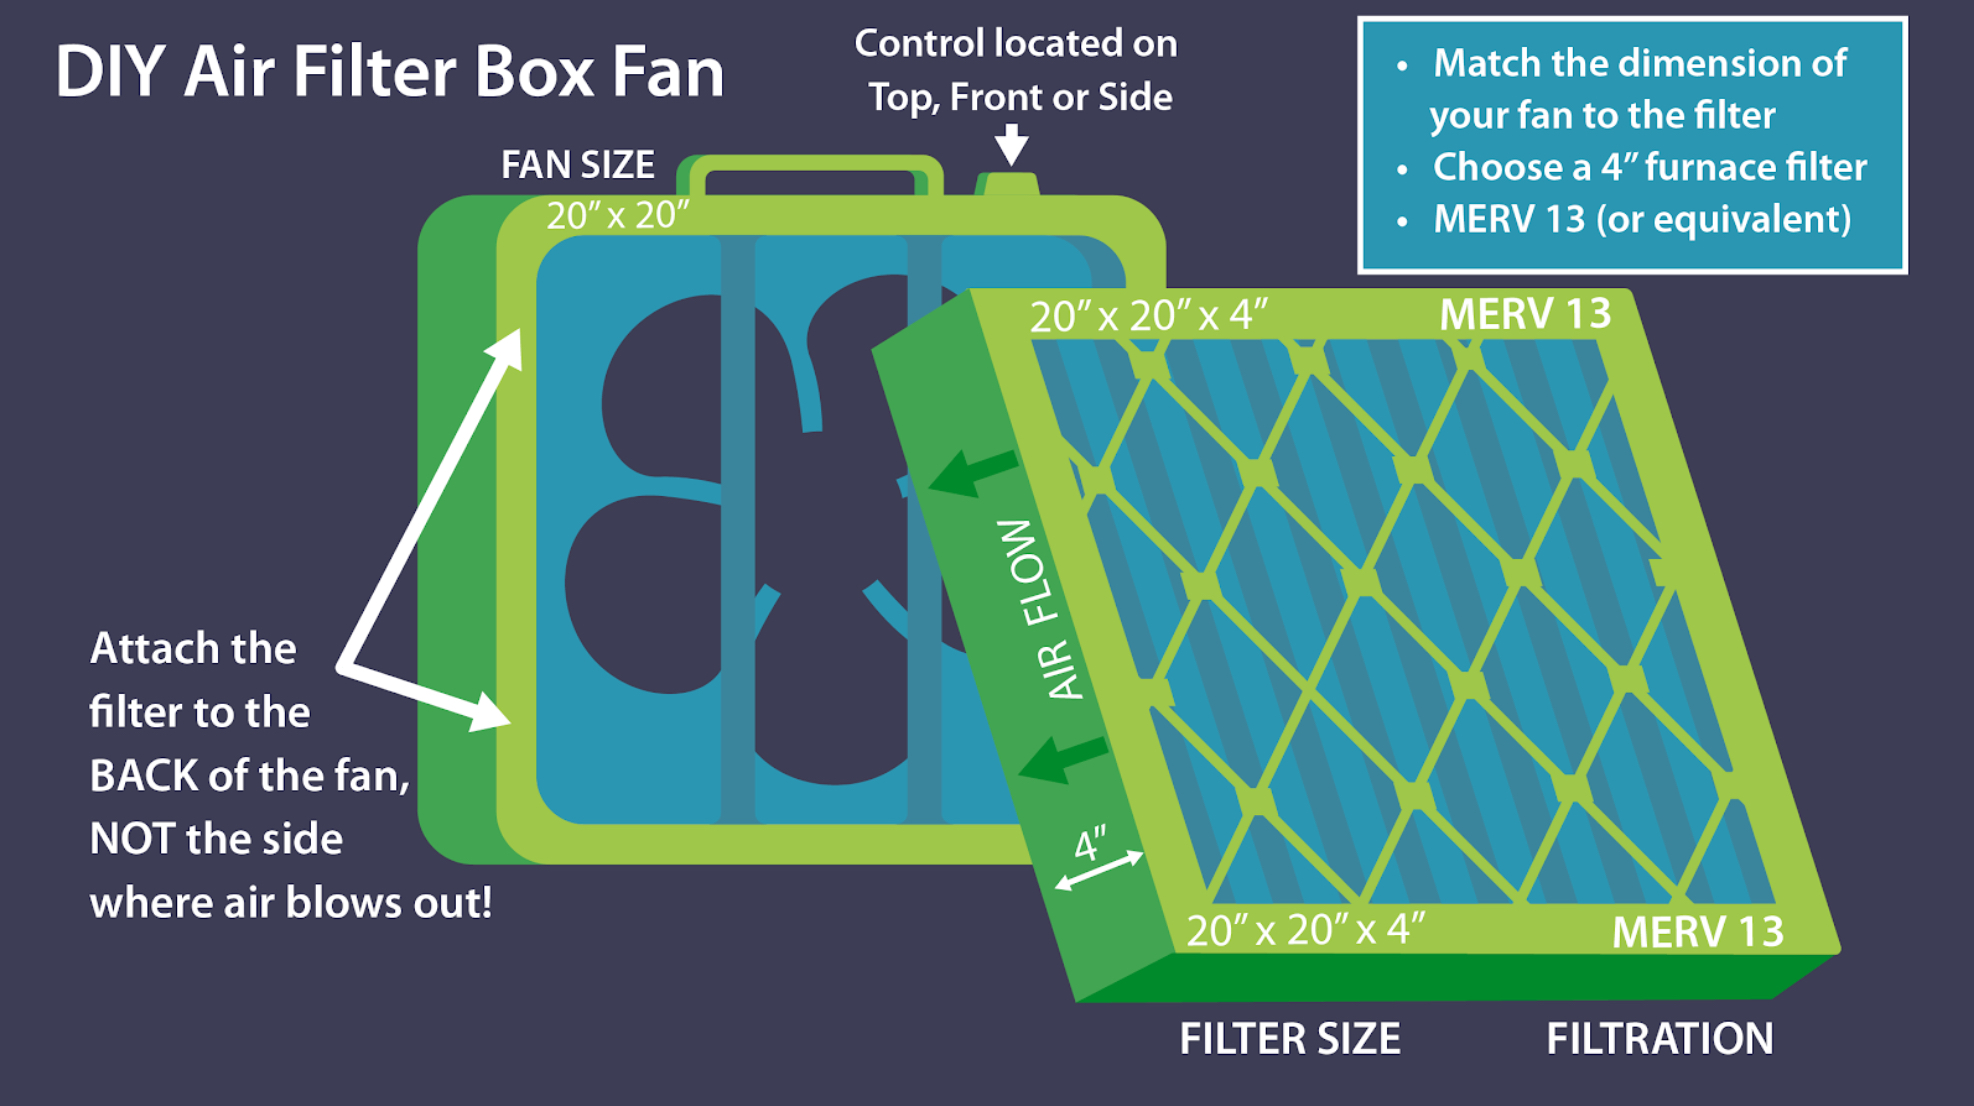 Increase Filtration with a DIY Filtered Box Fan